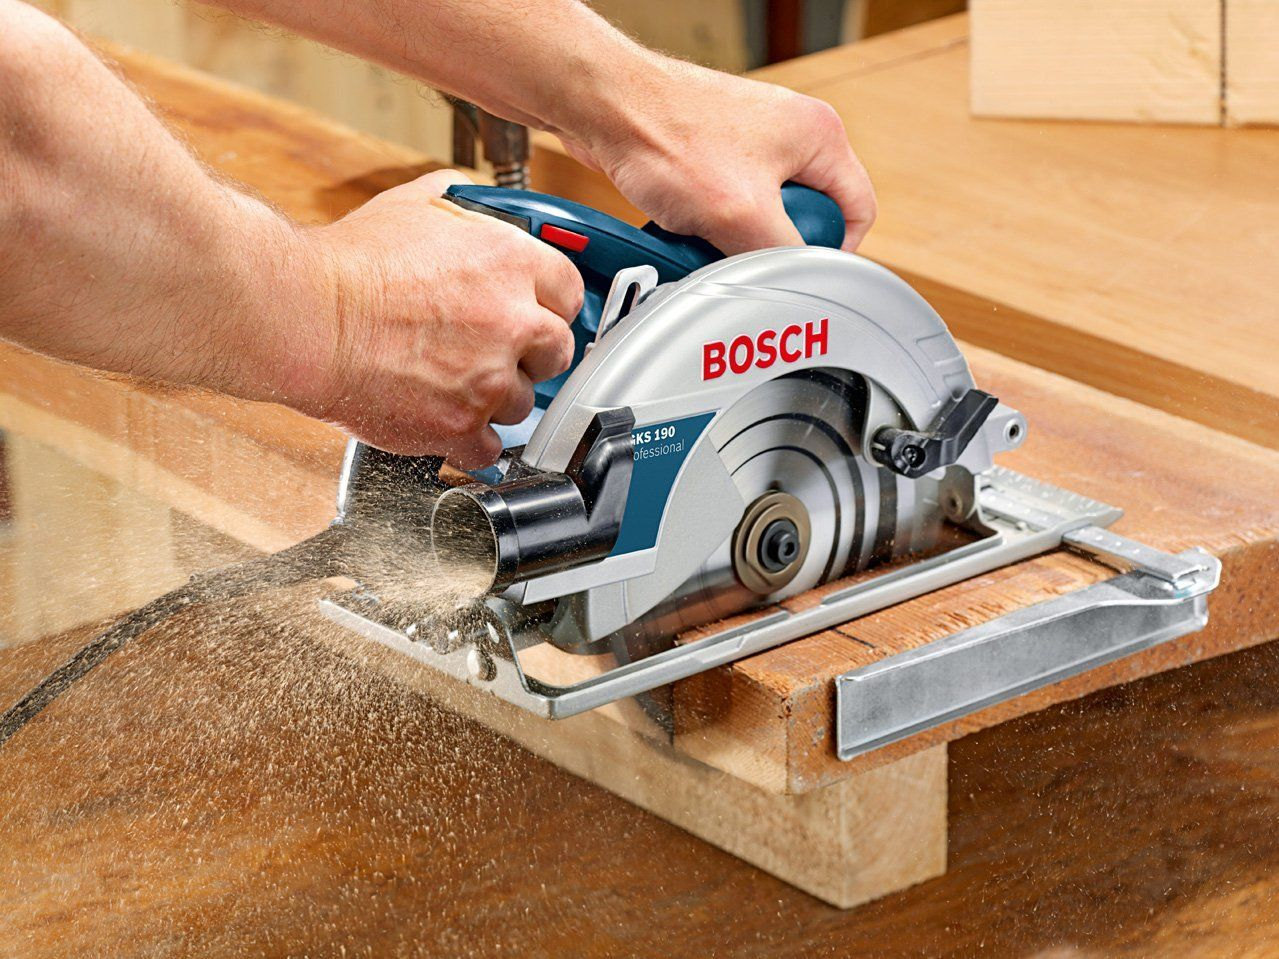 The bosch professional circular saw is powerful and versatile the bosch professional circular saw is powerful and versatile tool free blade changing offers easy maintenance and the soft grip handle makes it greentooth Choice Image